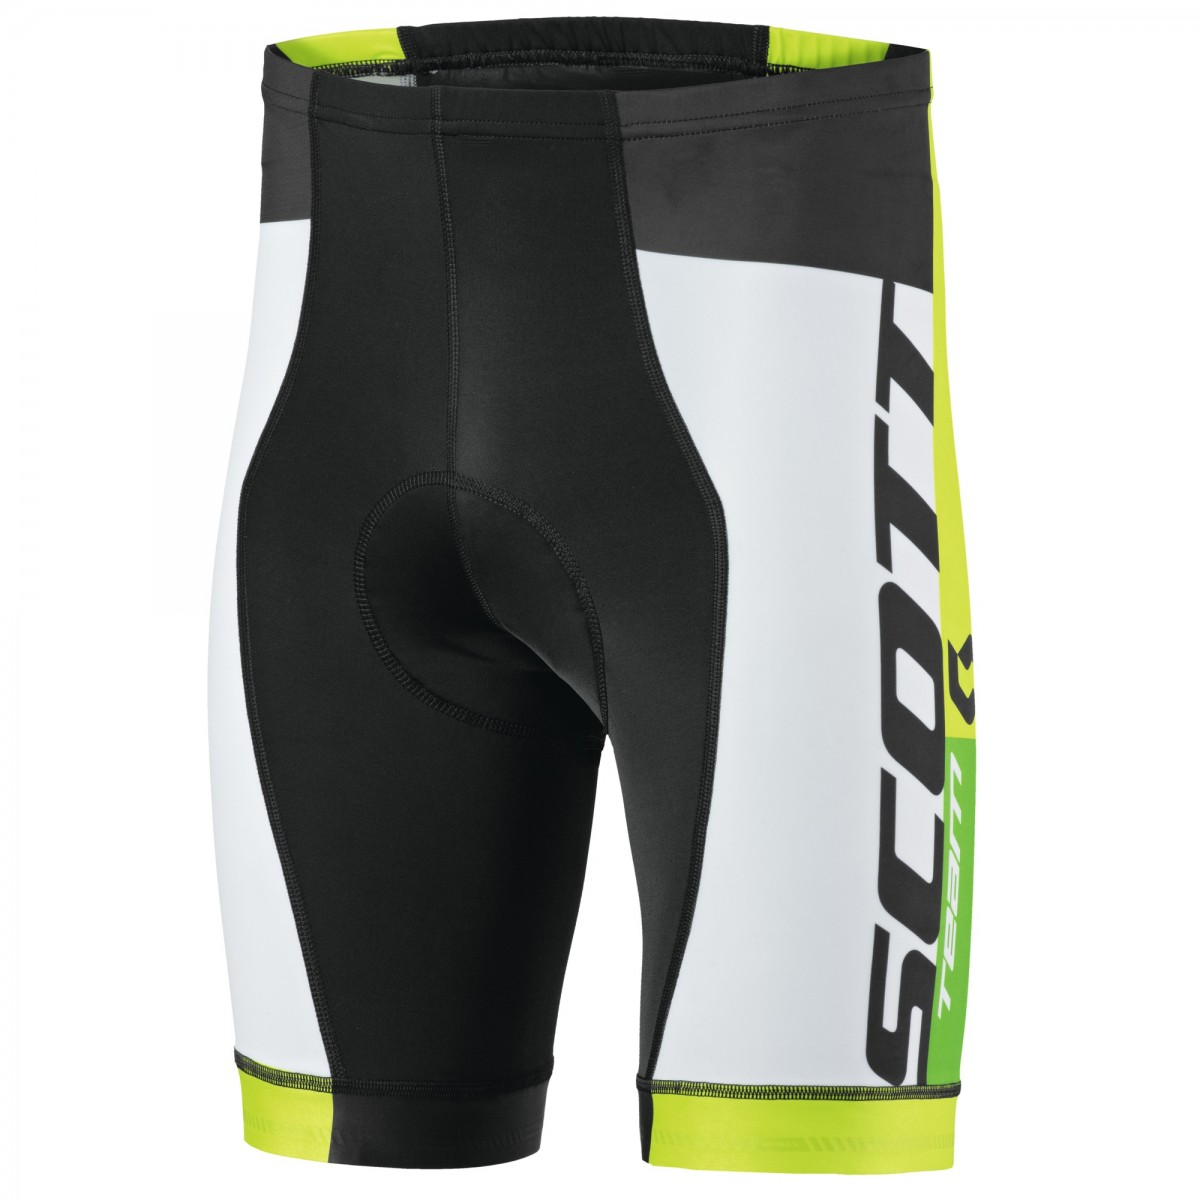 SCOTT BIKE SHORTS RC TEAM 2015 BLACK TENDER GREEN - cumaricambike.it 0812e73ad